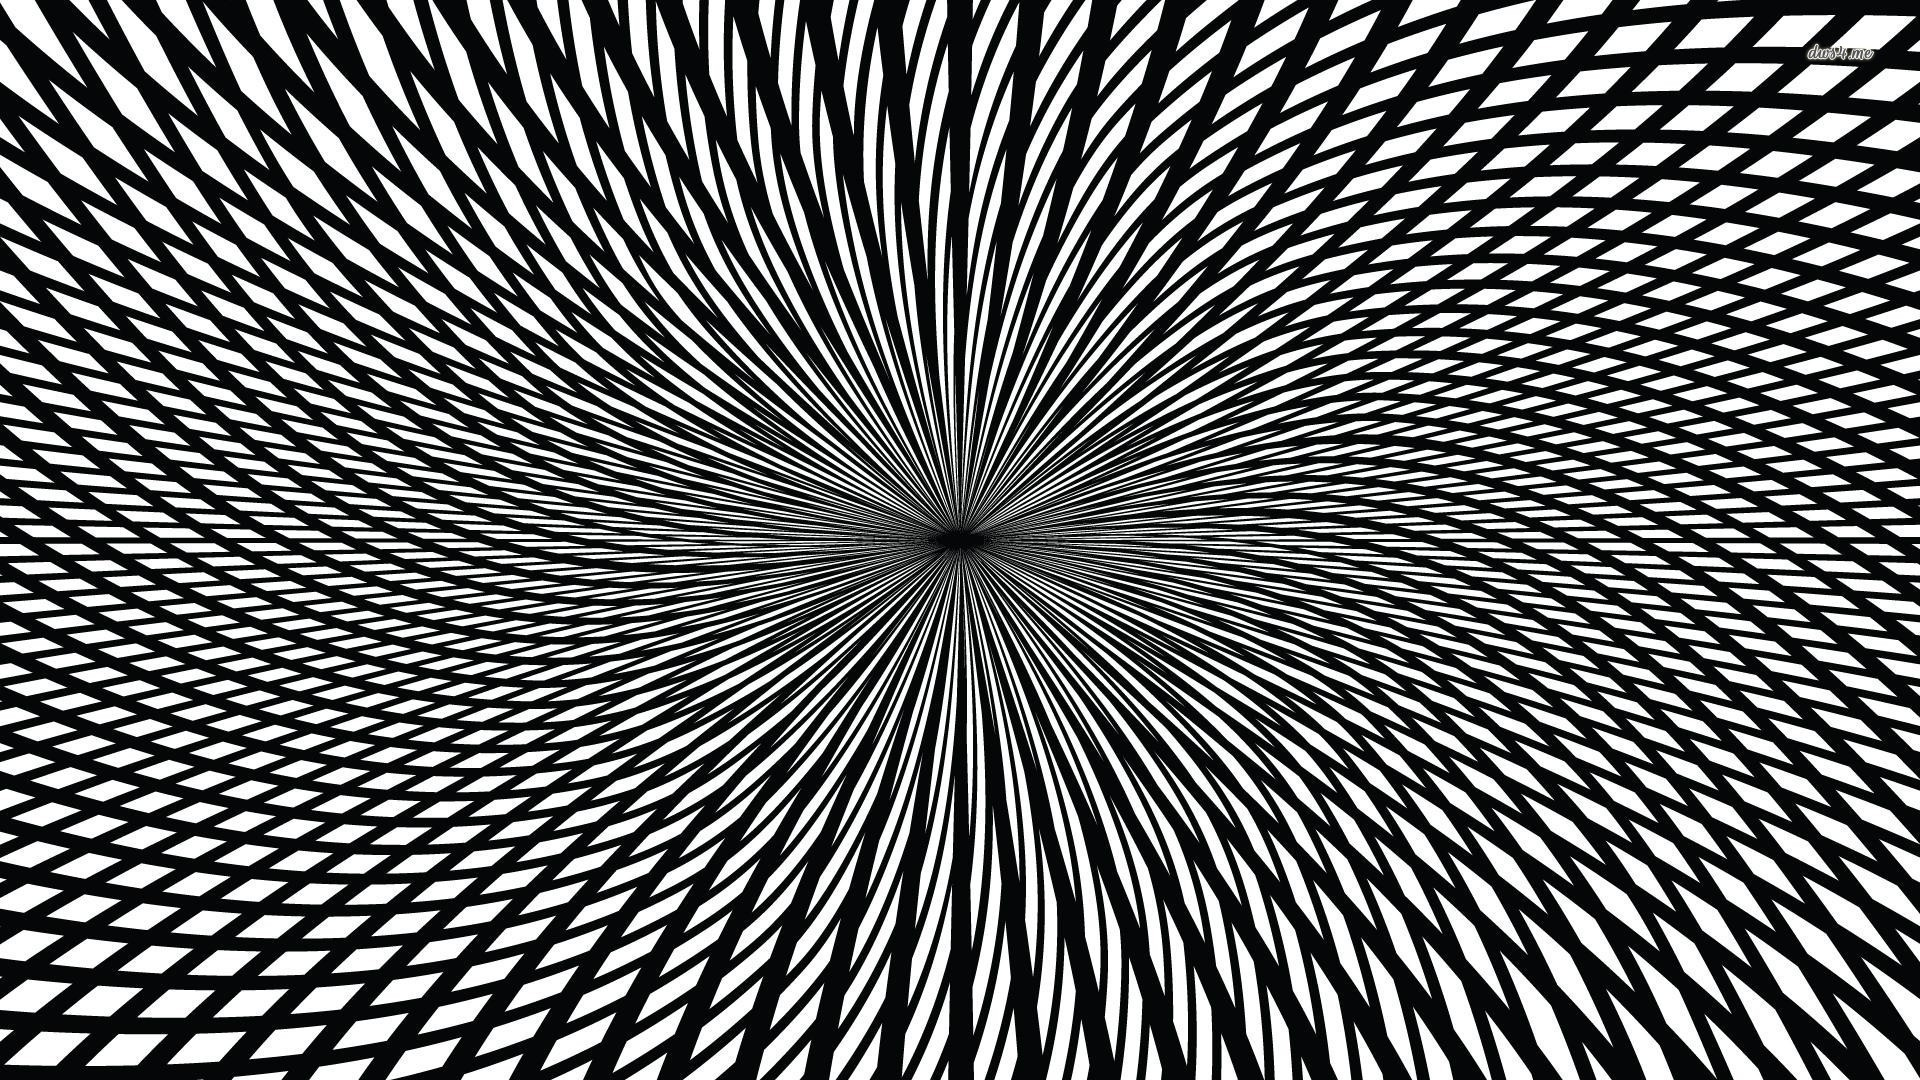 Optical Illusion wallpaper ·â'  Download free awesome full HD